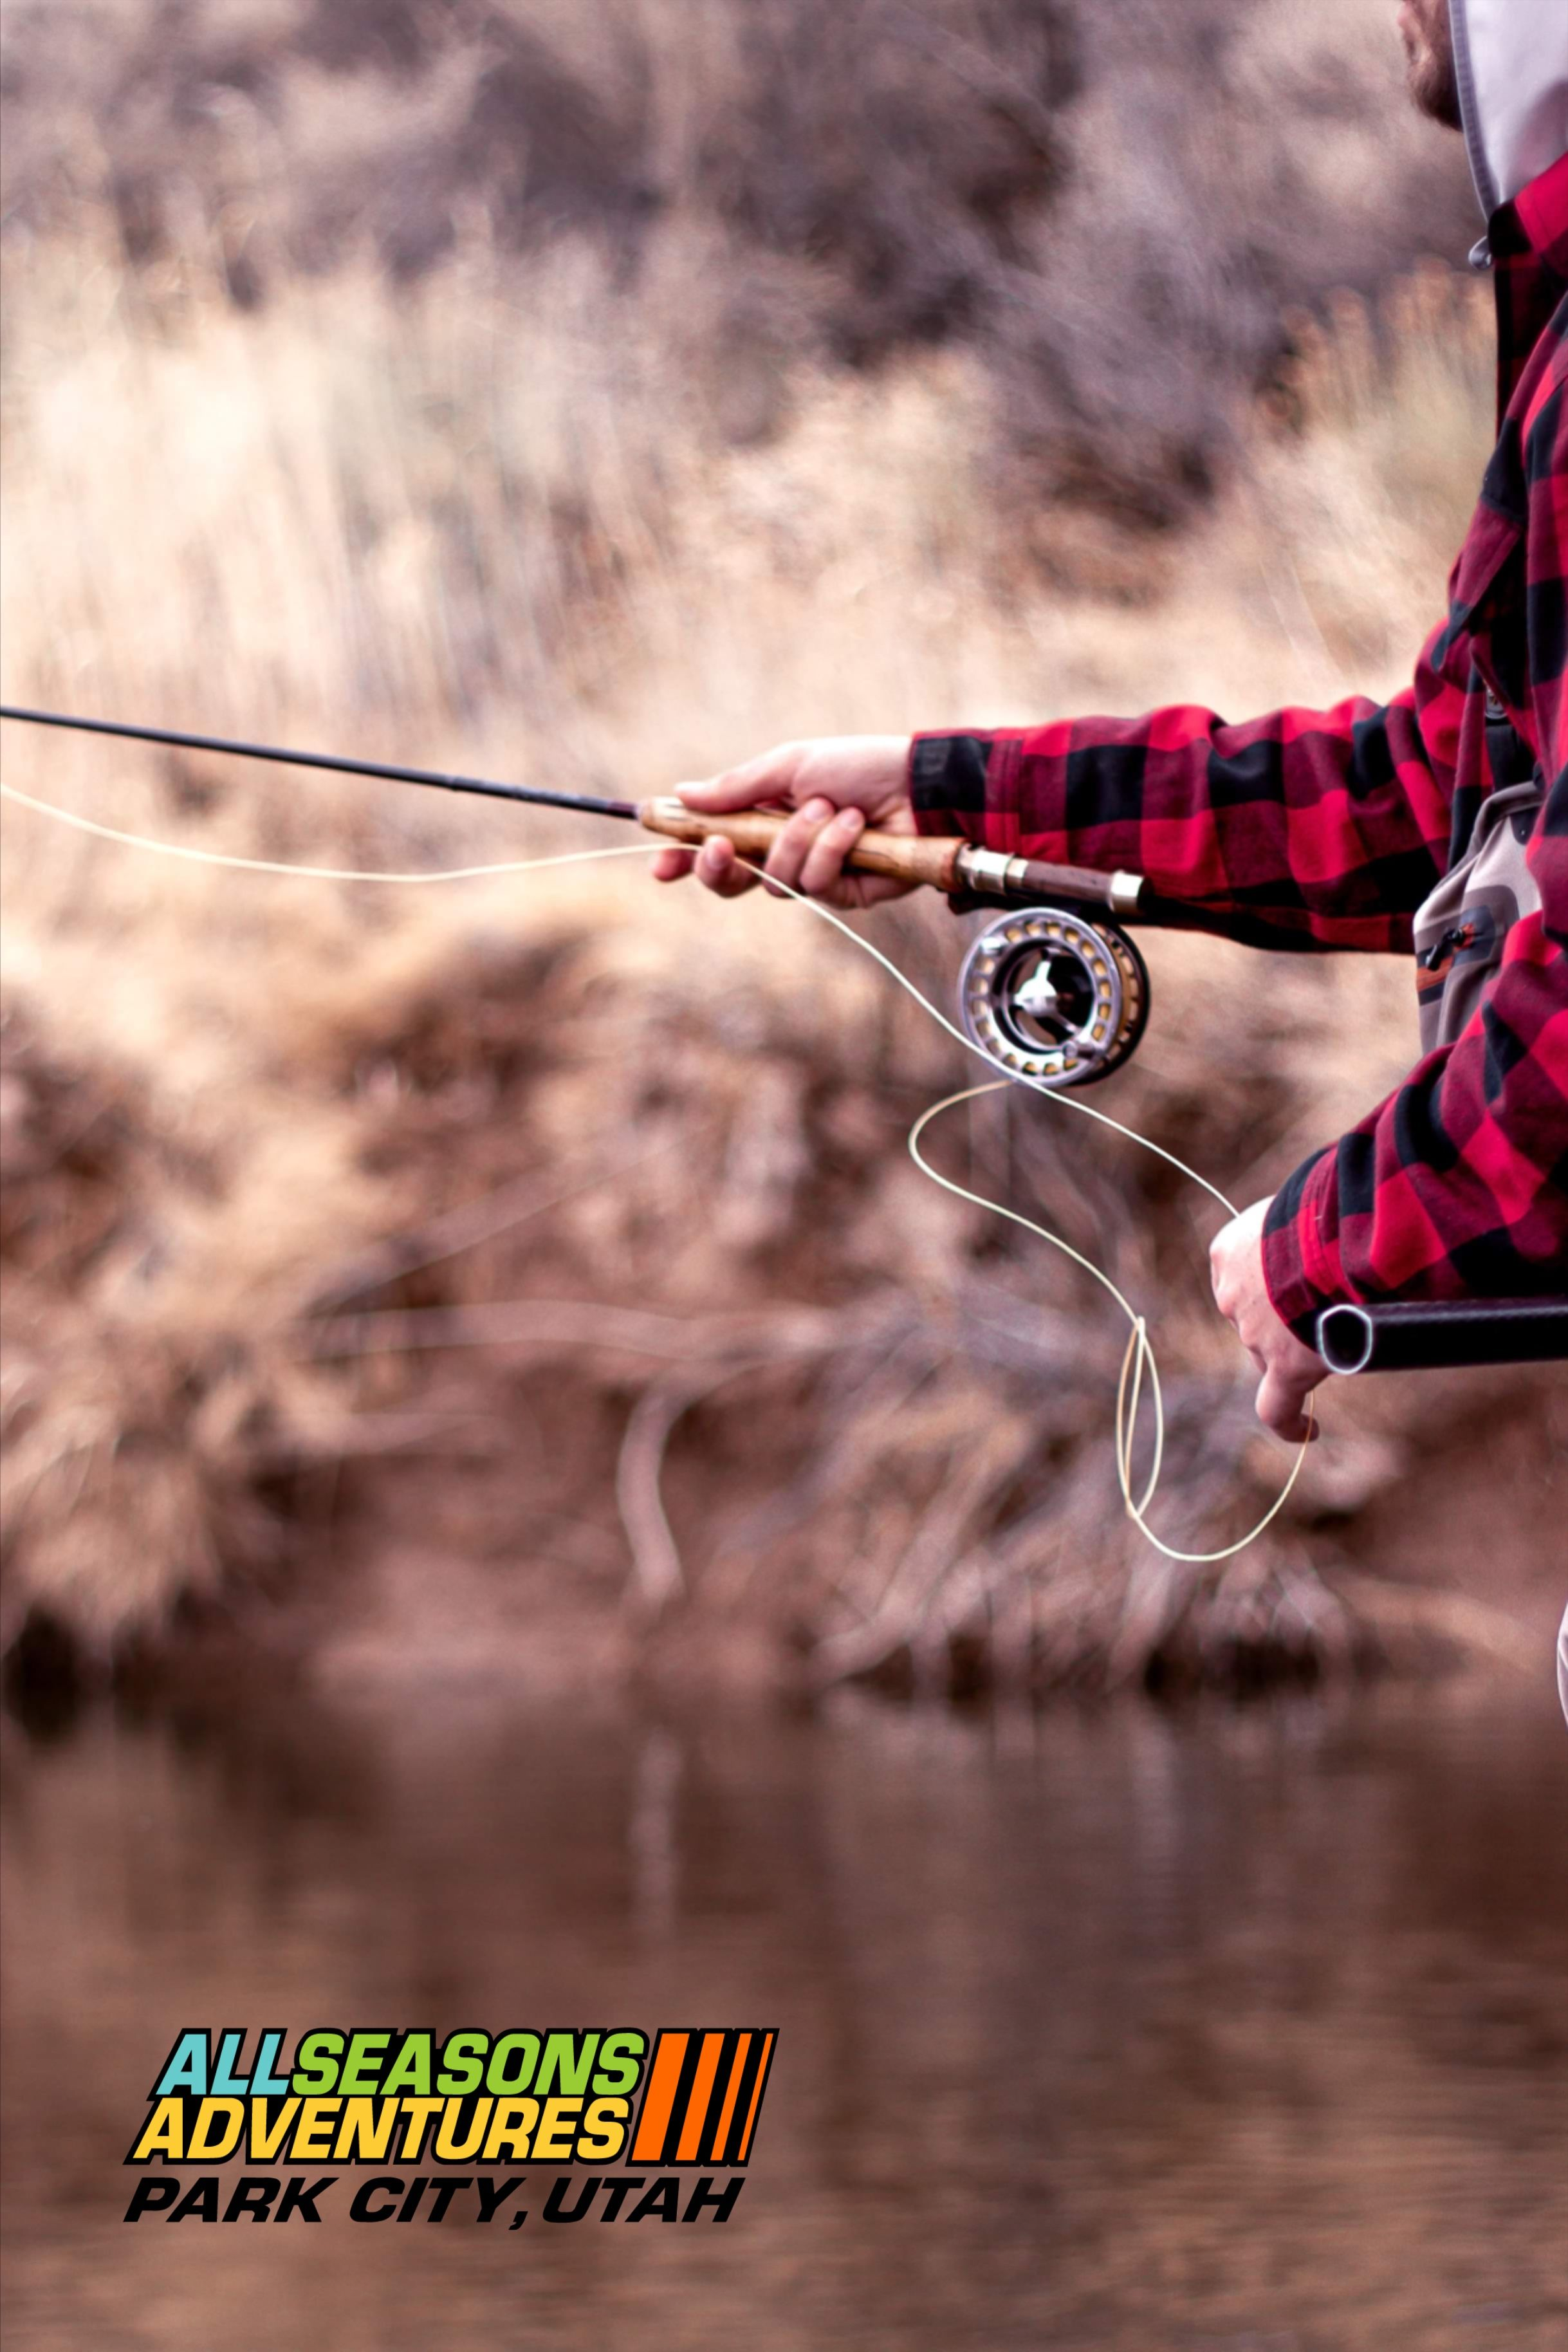 All Inclusive Fly Fishing Trips Outdoor Guide Park City Adventure